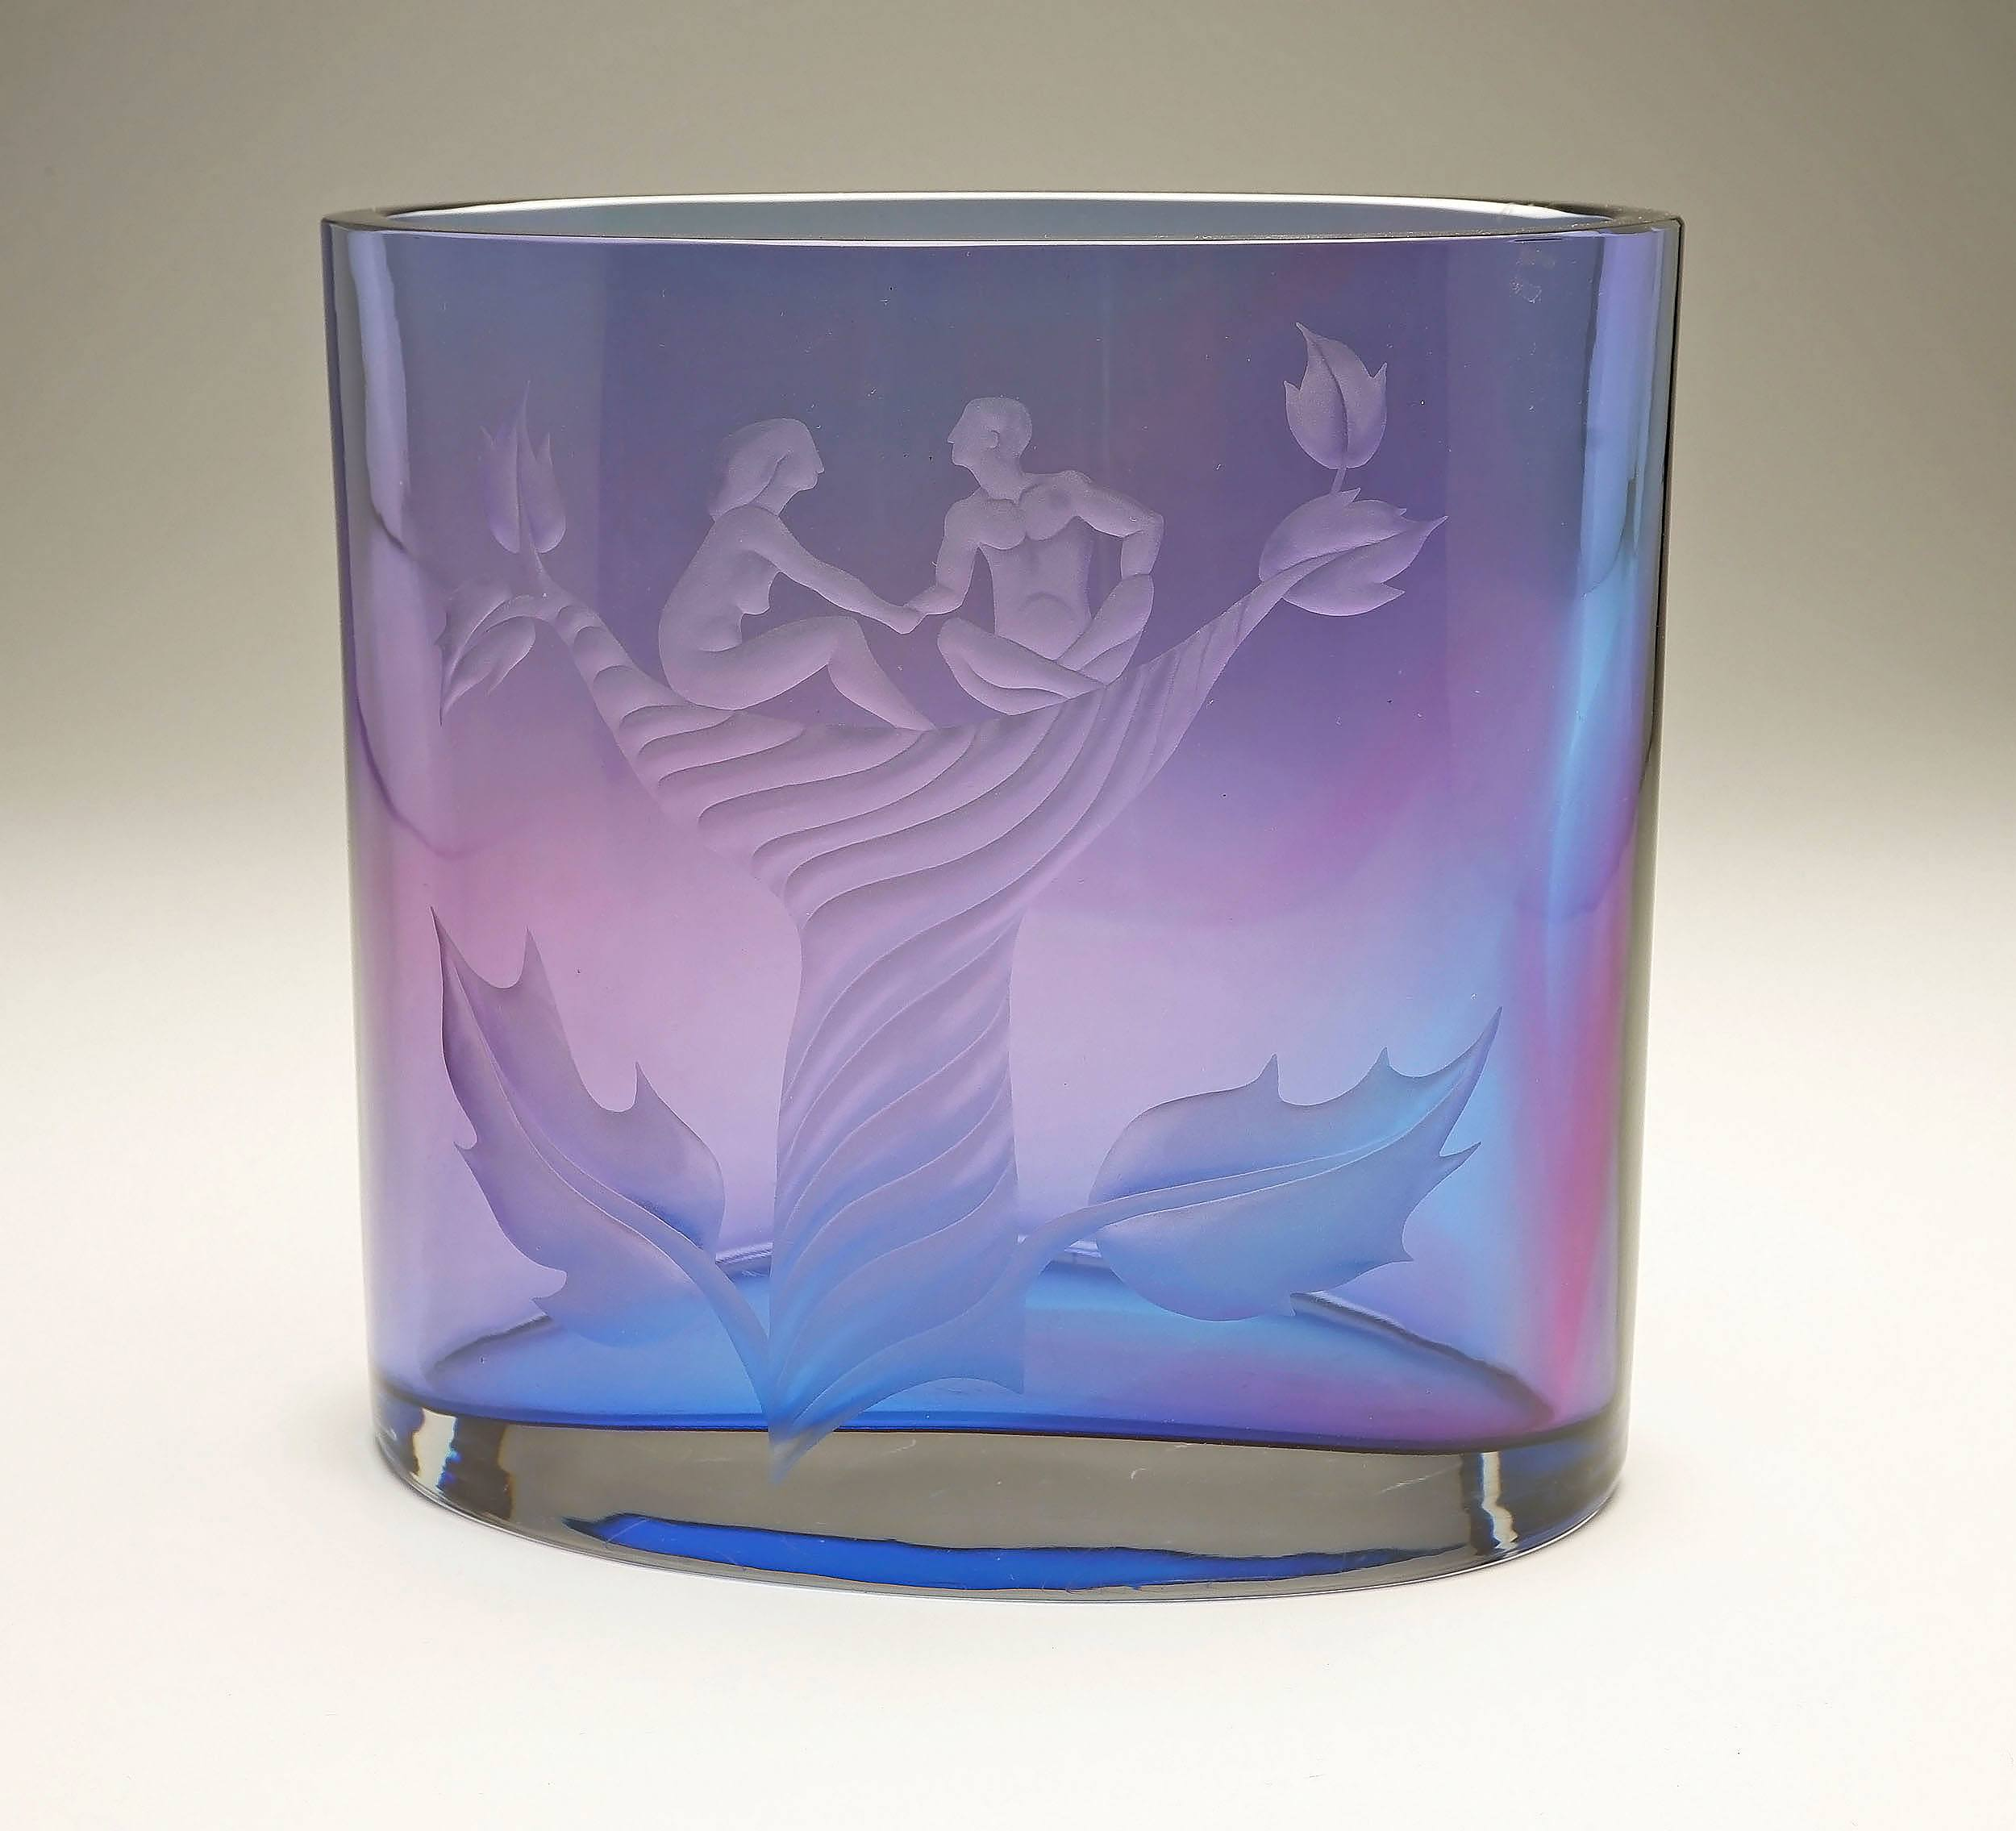 'Large Orrefors Exhibition Quality Glass Vase by Olle Alberius'